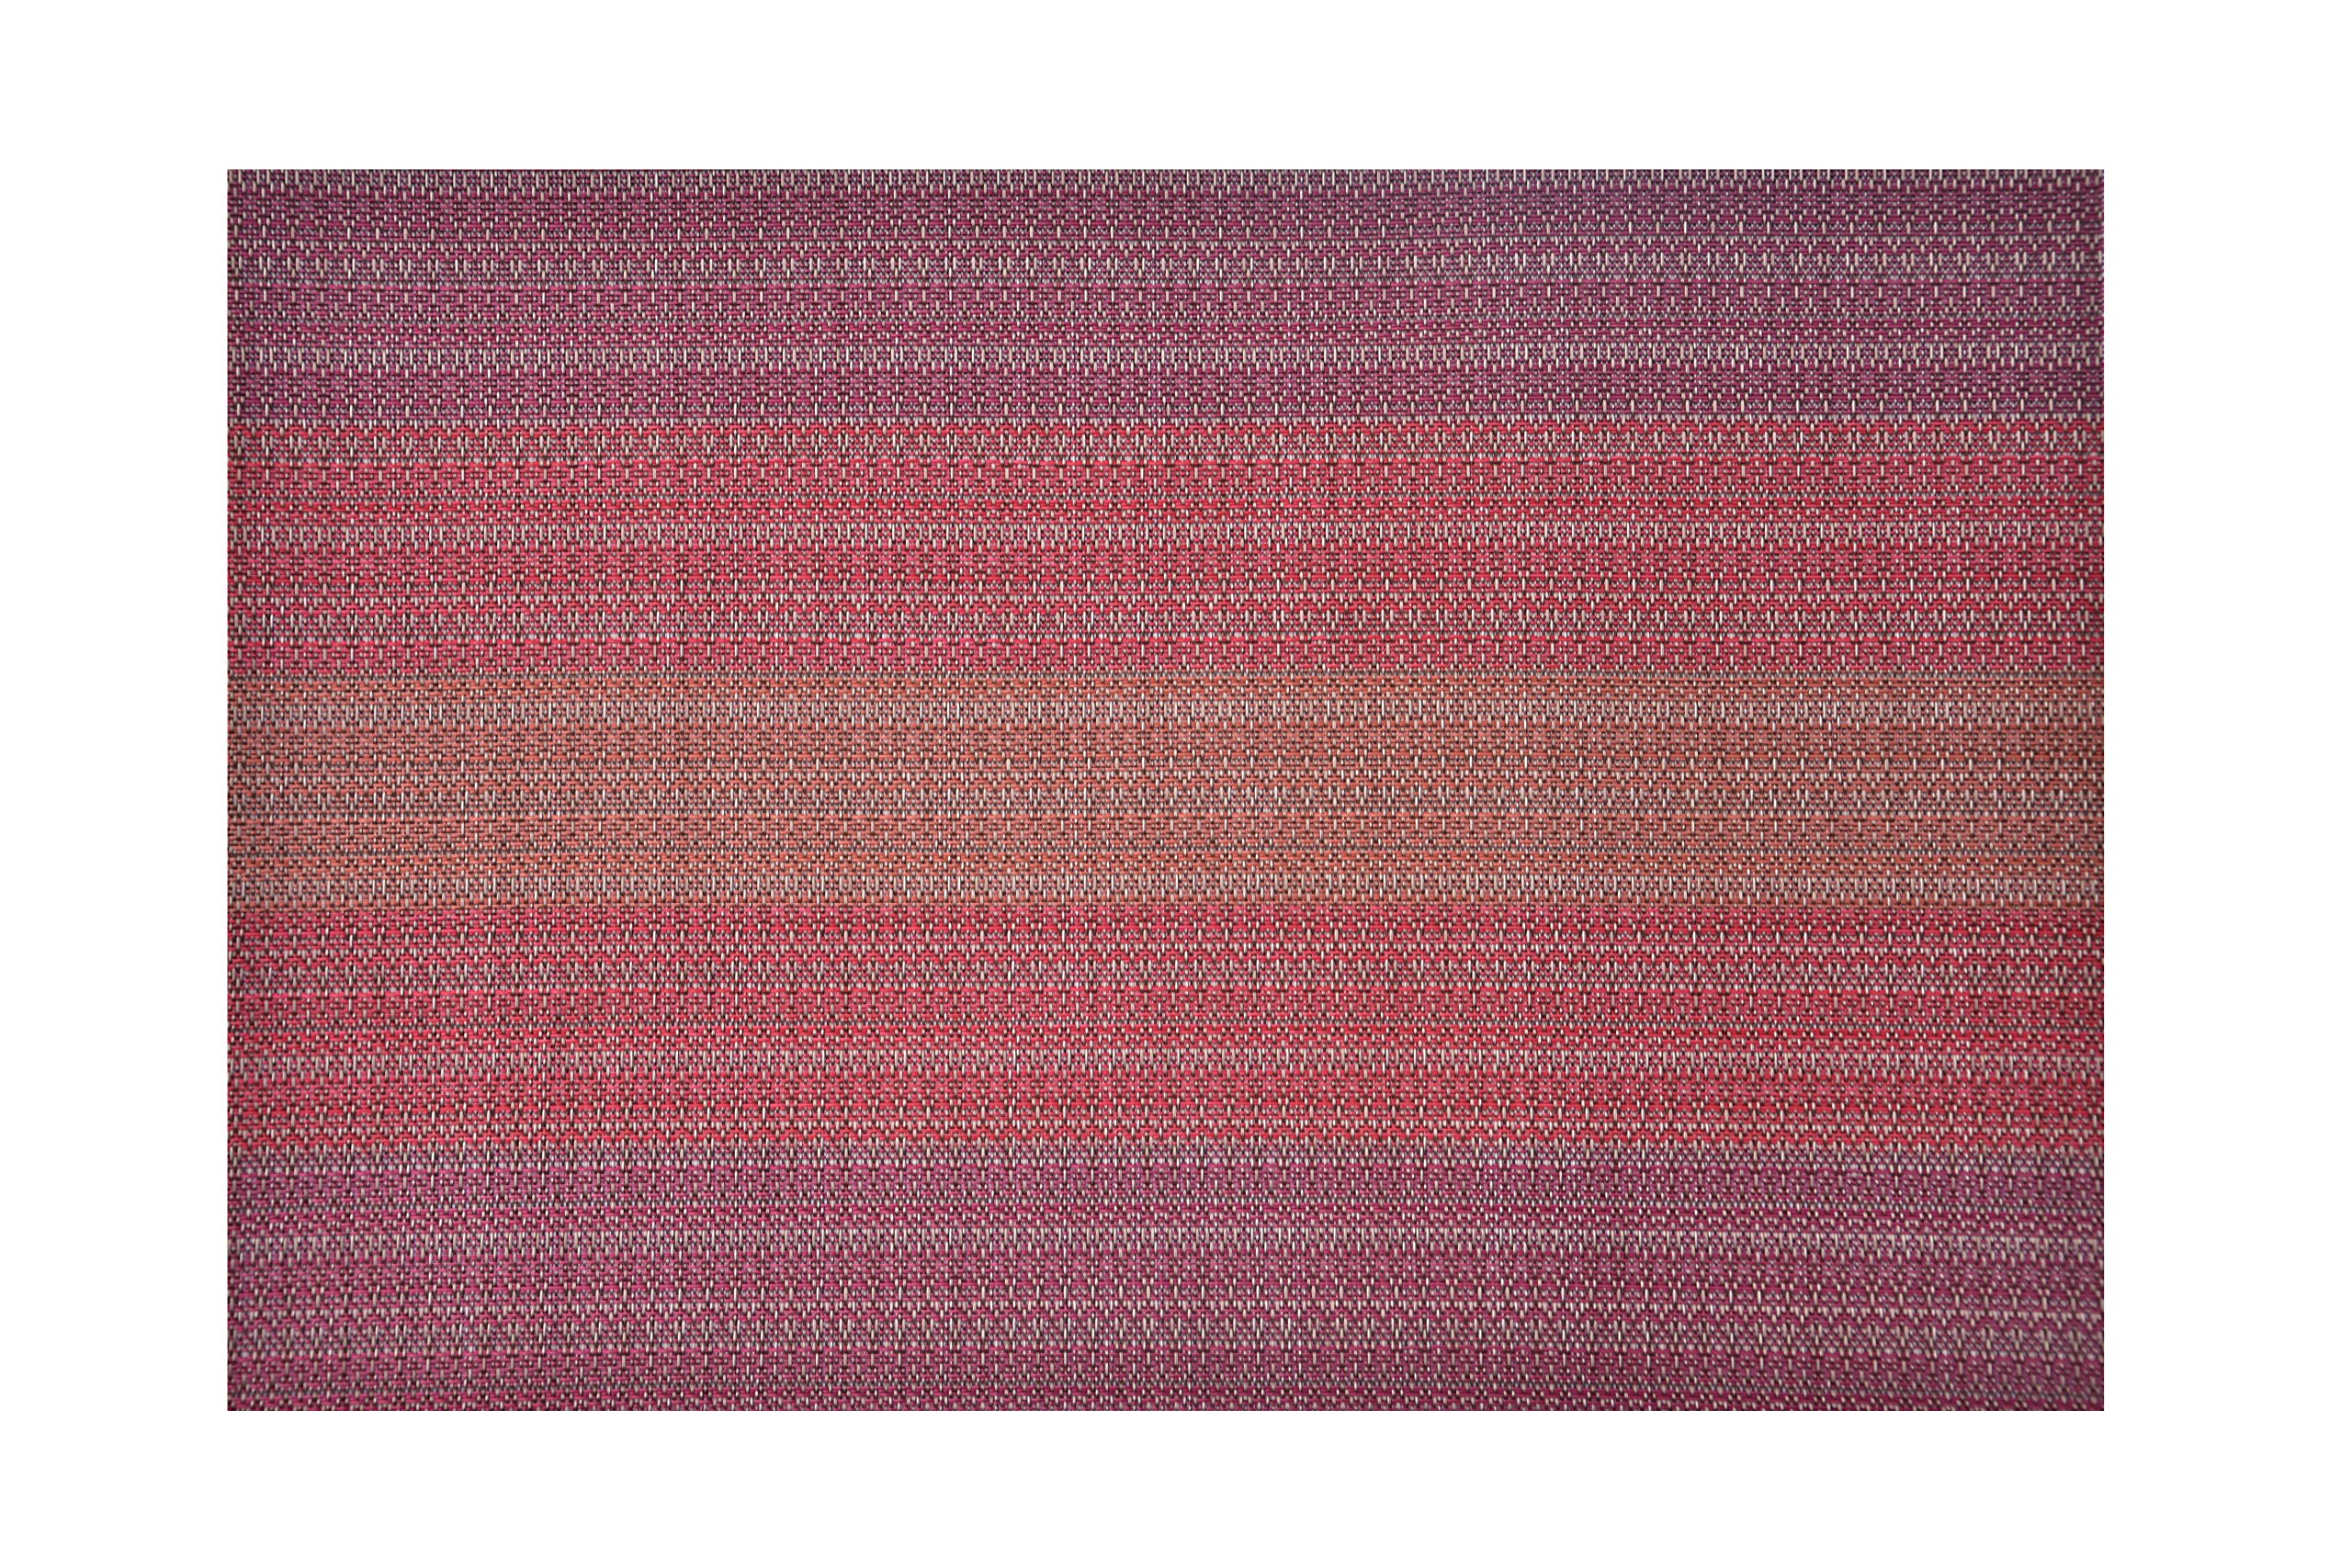 Ecoshome Placemats Heat-resistant Placemats Stain Resistant Anti-skid Washable PVC Table Mats Woven Vinyl Placemats (Set of 6, Red)